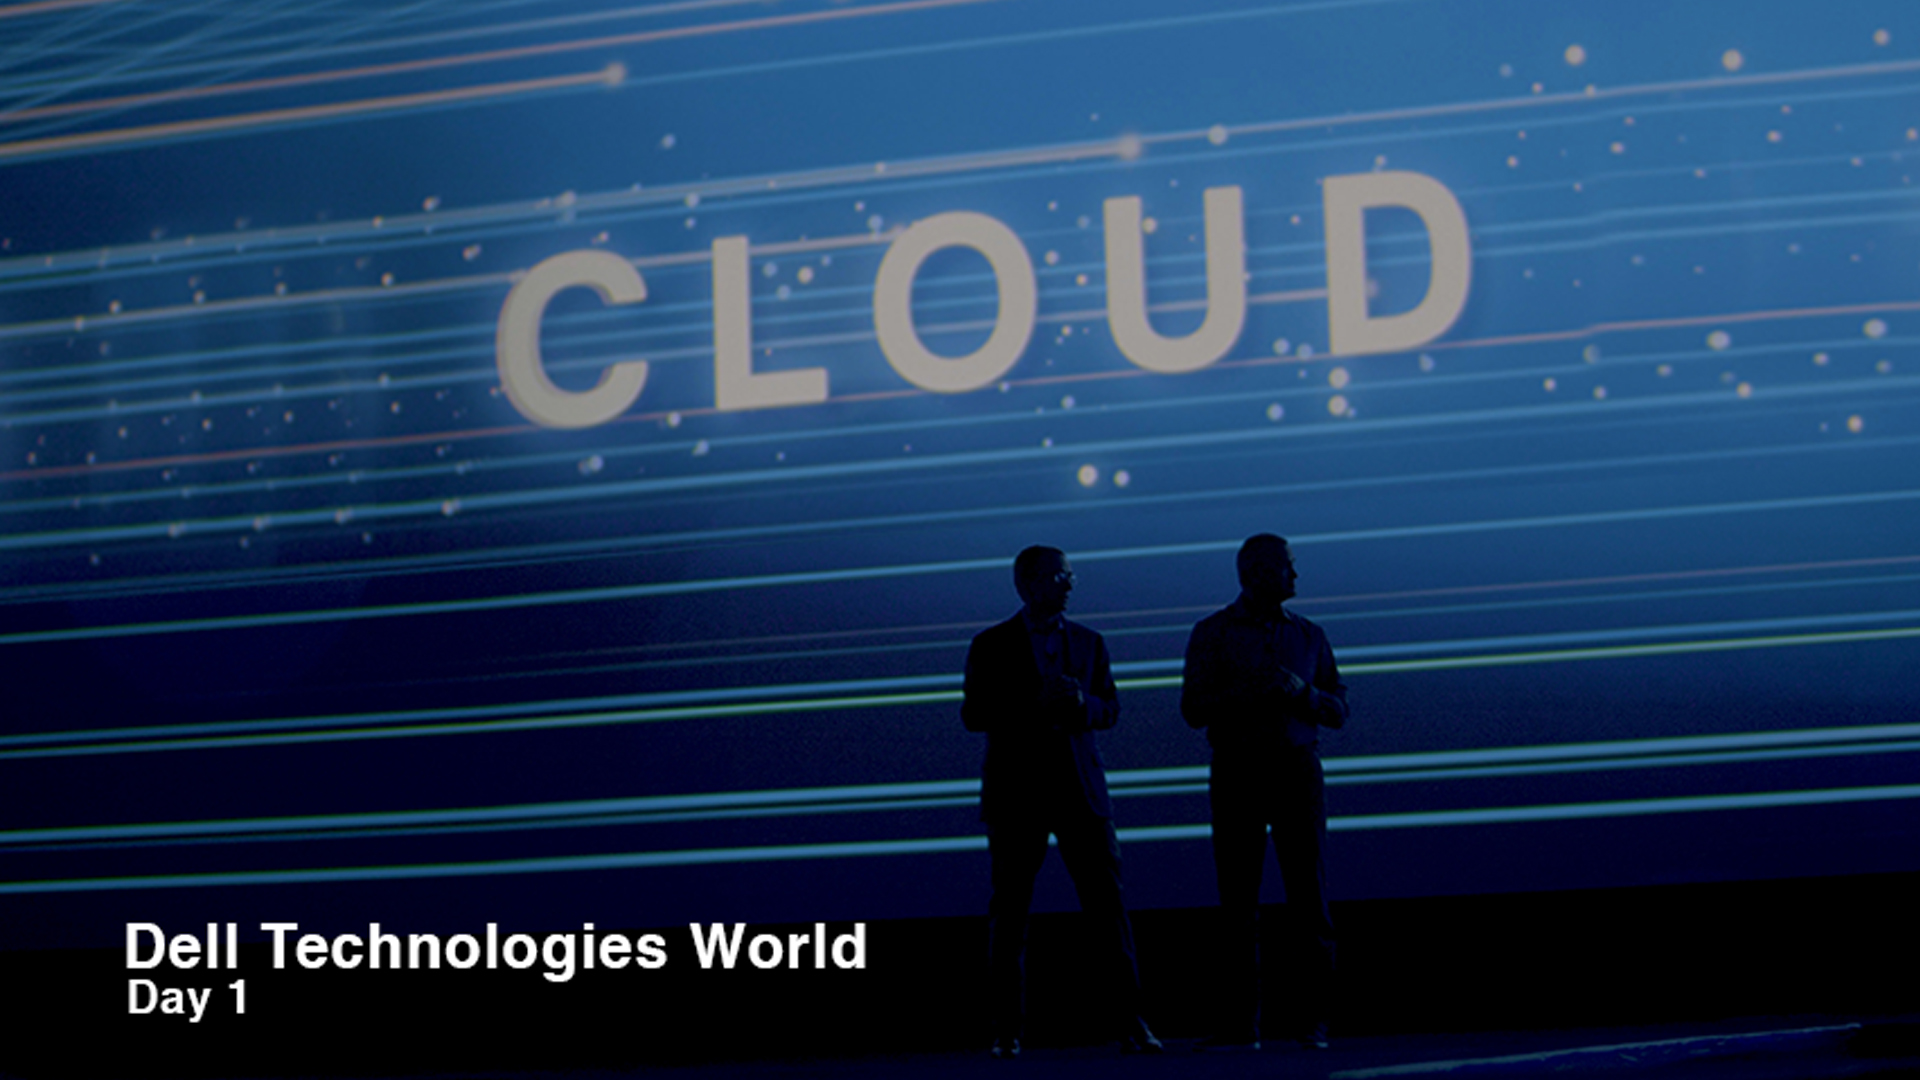 Dell Technologies day 1